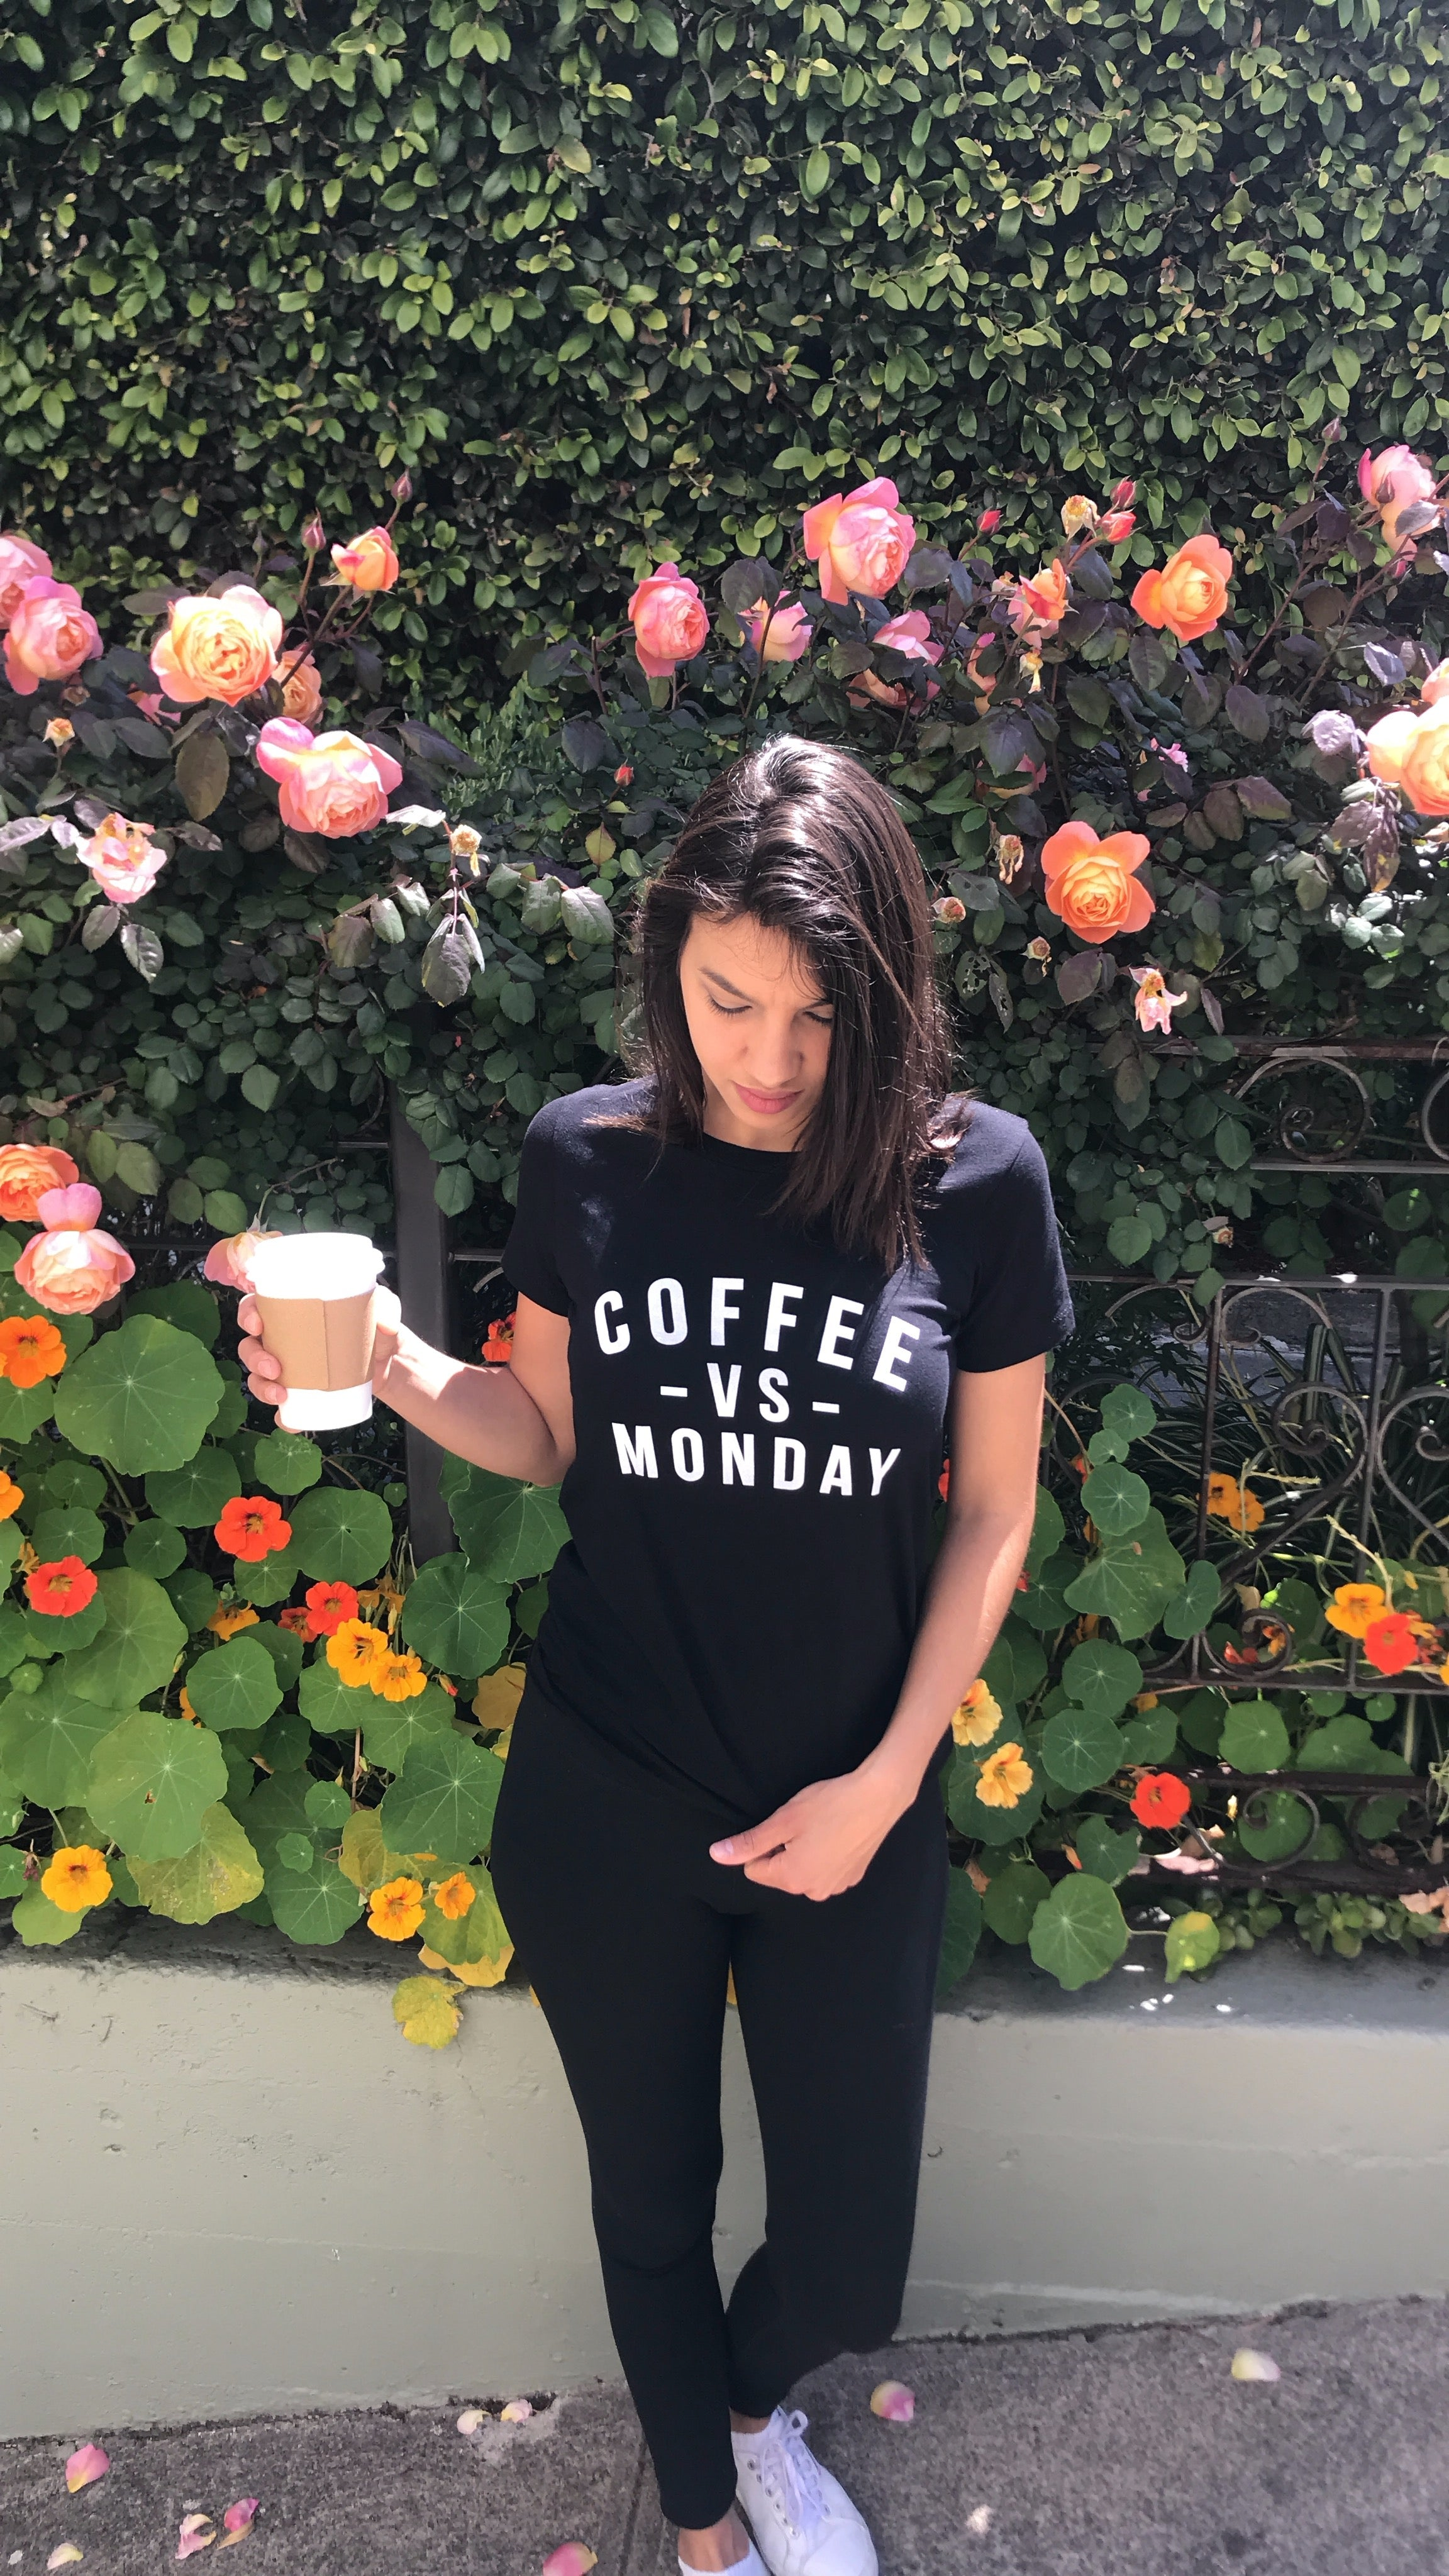 New Arrival: Coffee vs. Monday!